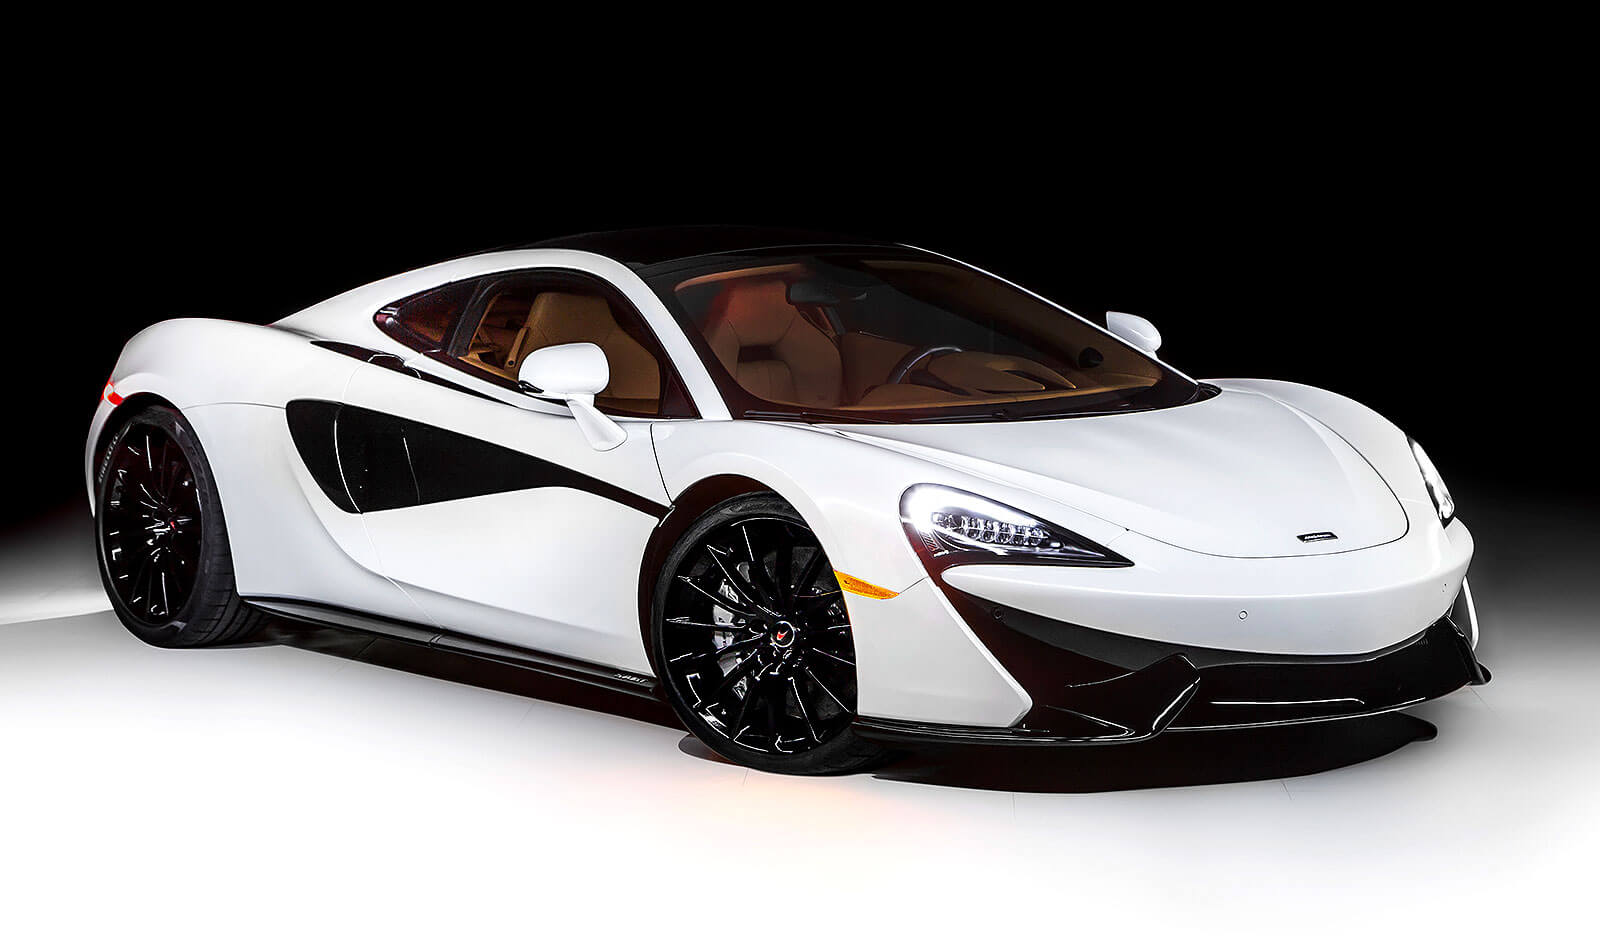 """Defining moment: The McLaren 570GT by MSO Concept made its debut on the 18th fairway of the Pebble Beach golf course in August, bearing """"styling, feature and material enhancements"""" that will all become available through the MSO Defined portfolio."""